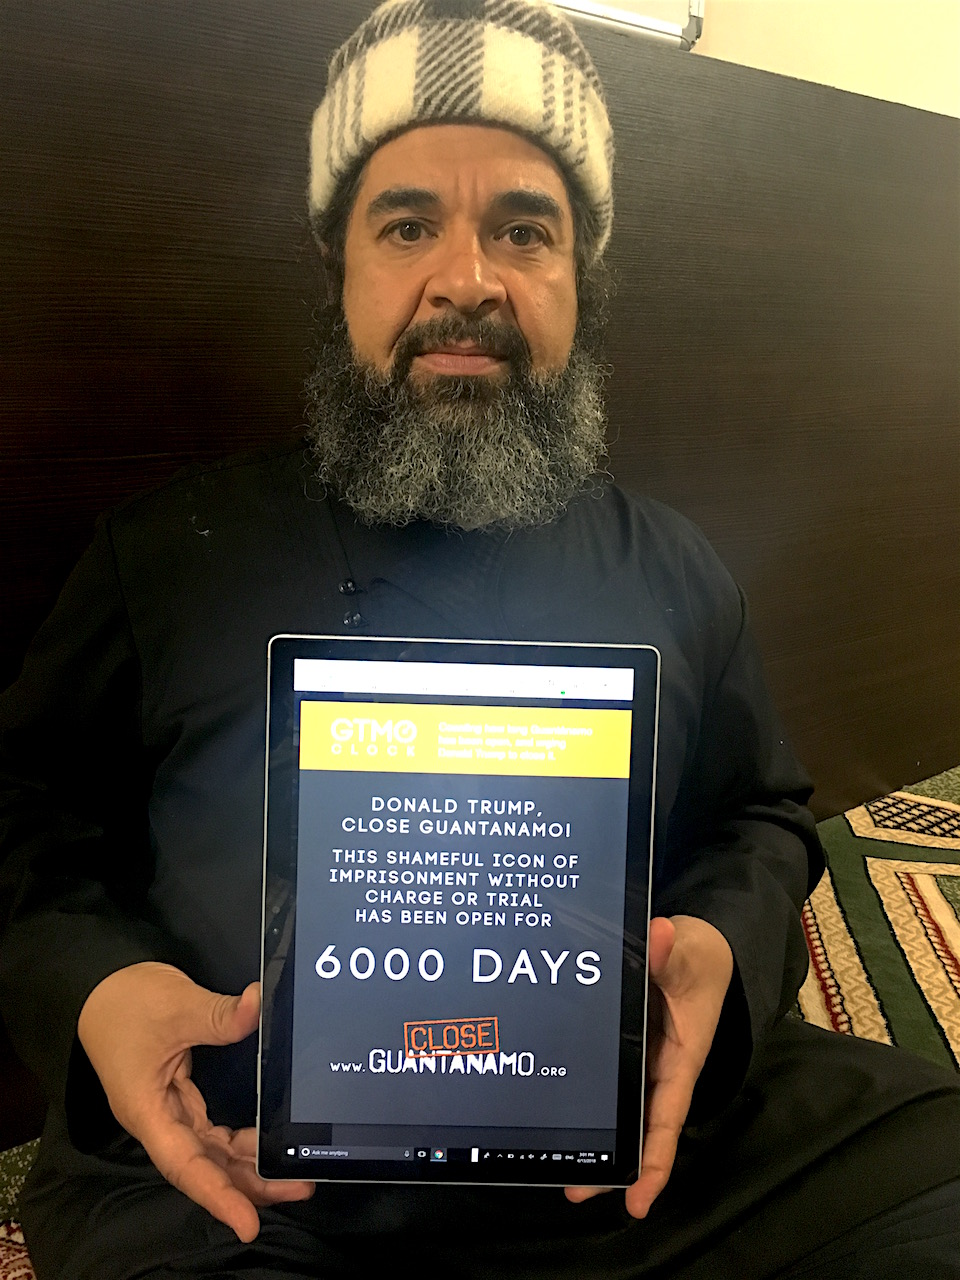 Former Guantanamo prisoner Shaker Aamer urges Donald Trump to close Guantanamo on June 15, 2018, the 6,000th day of the prison's existence.